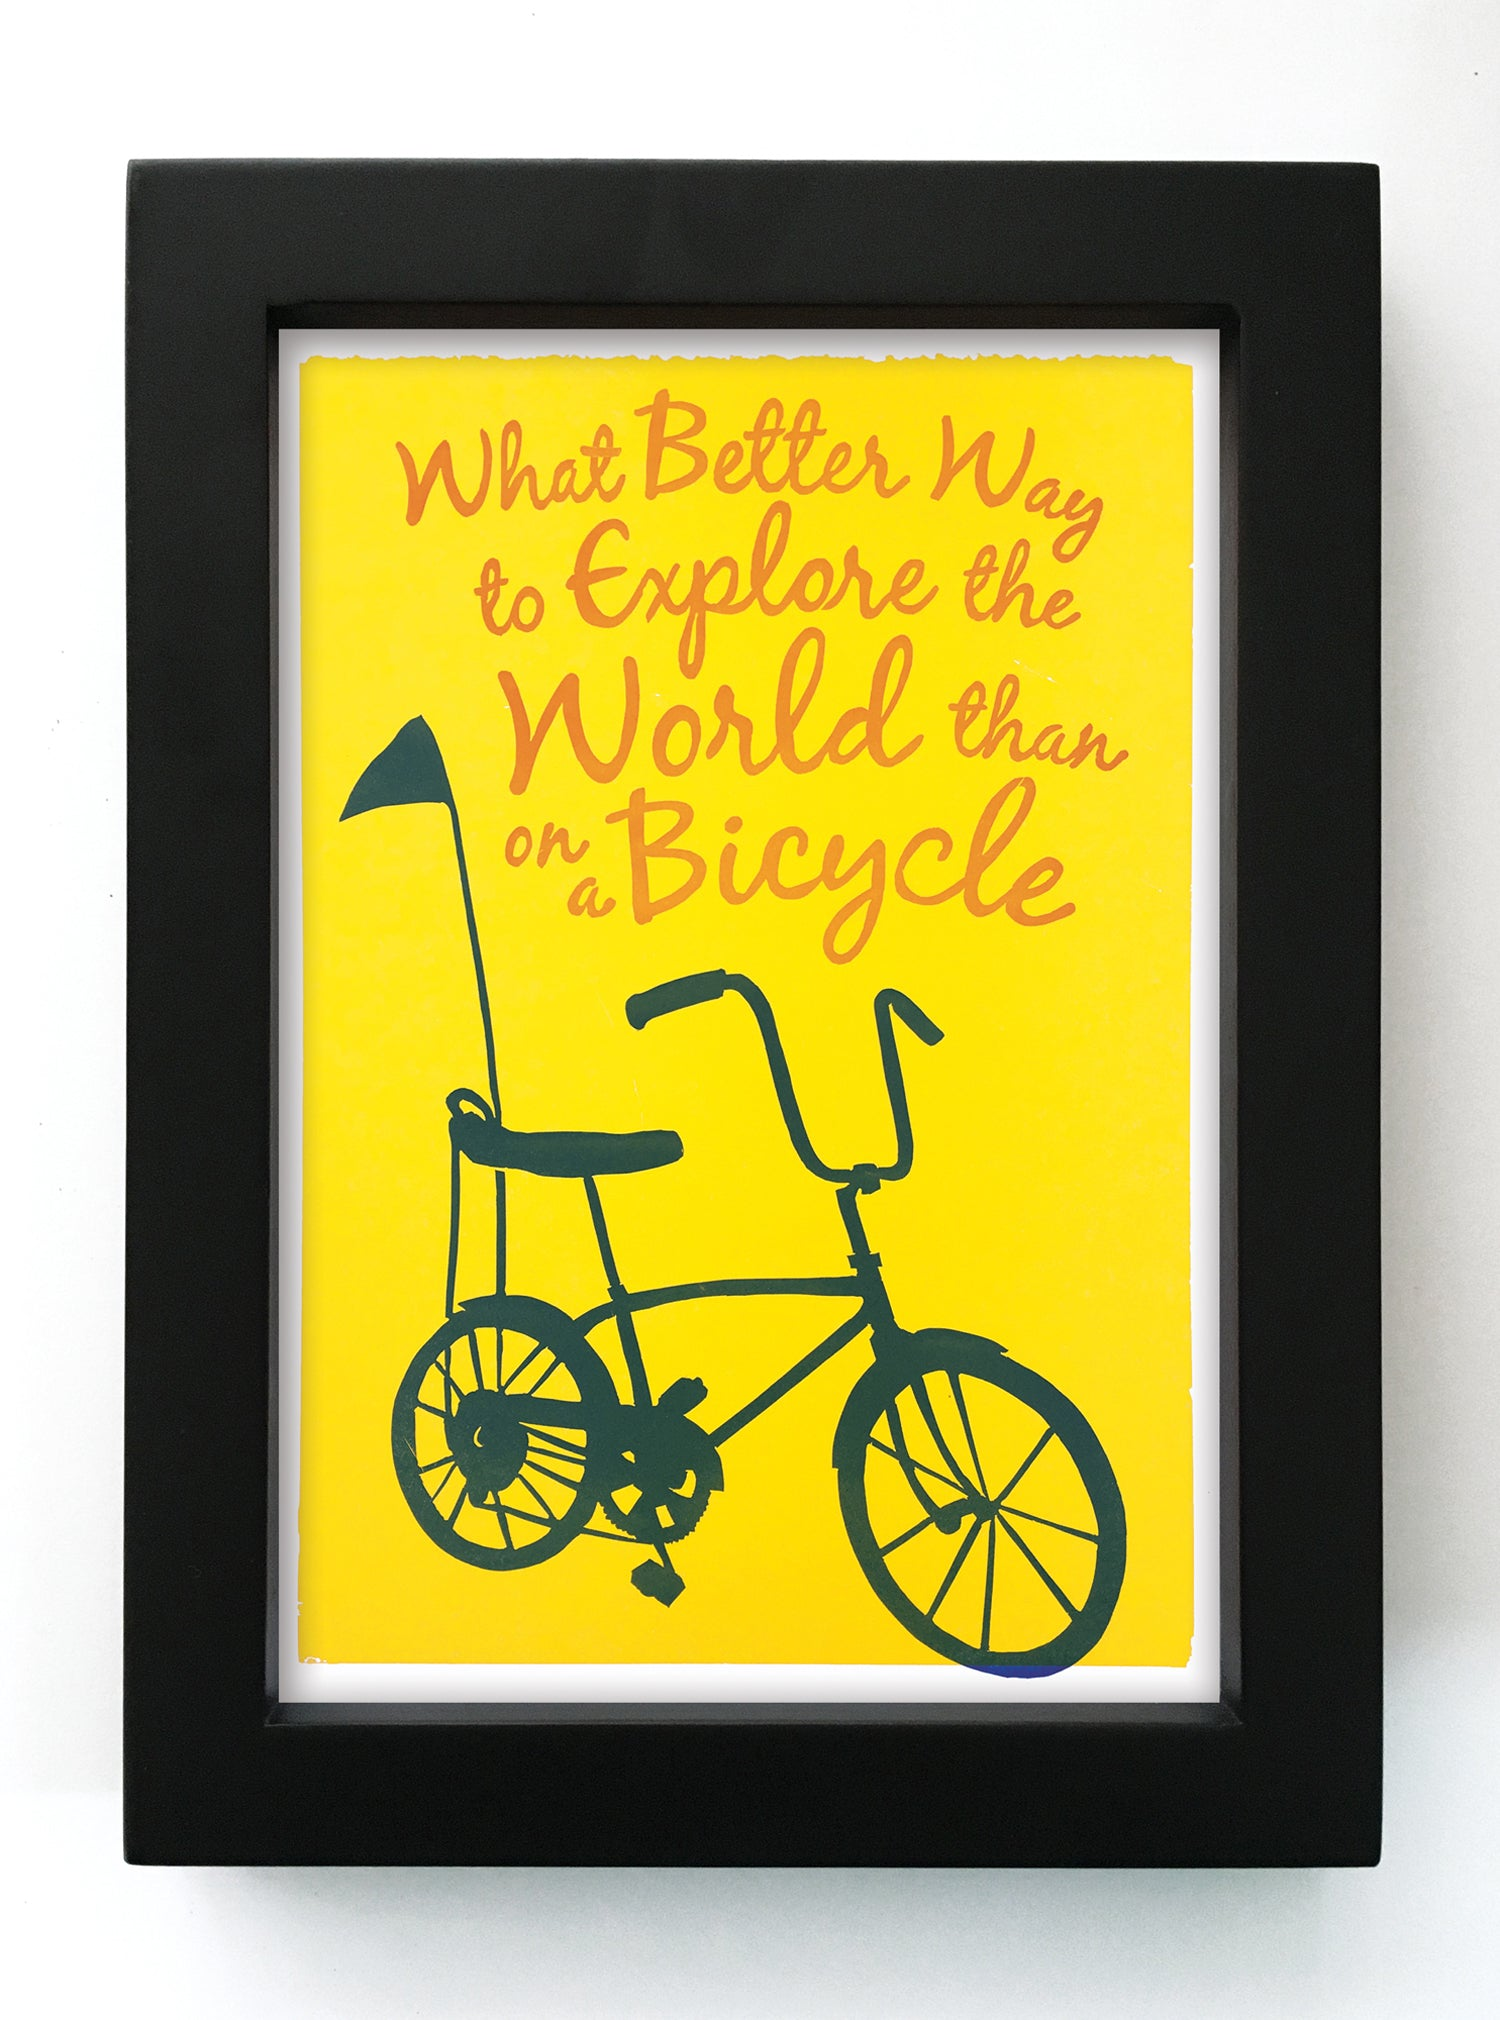 "Explore the World 5"" x 7"" Framed Reproduction"